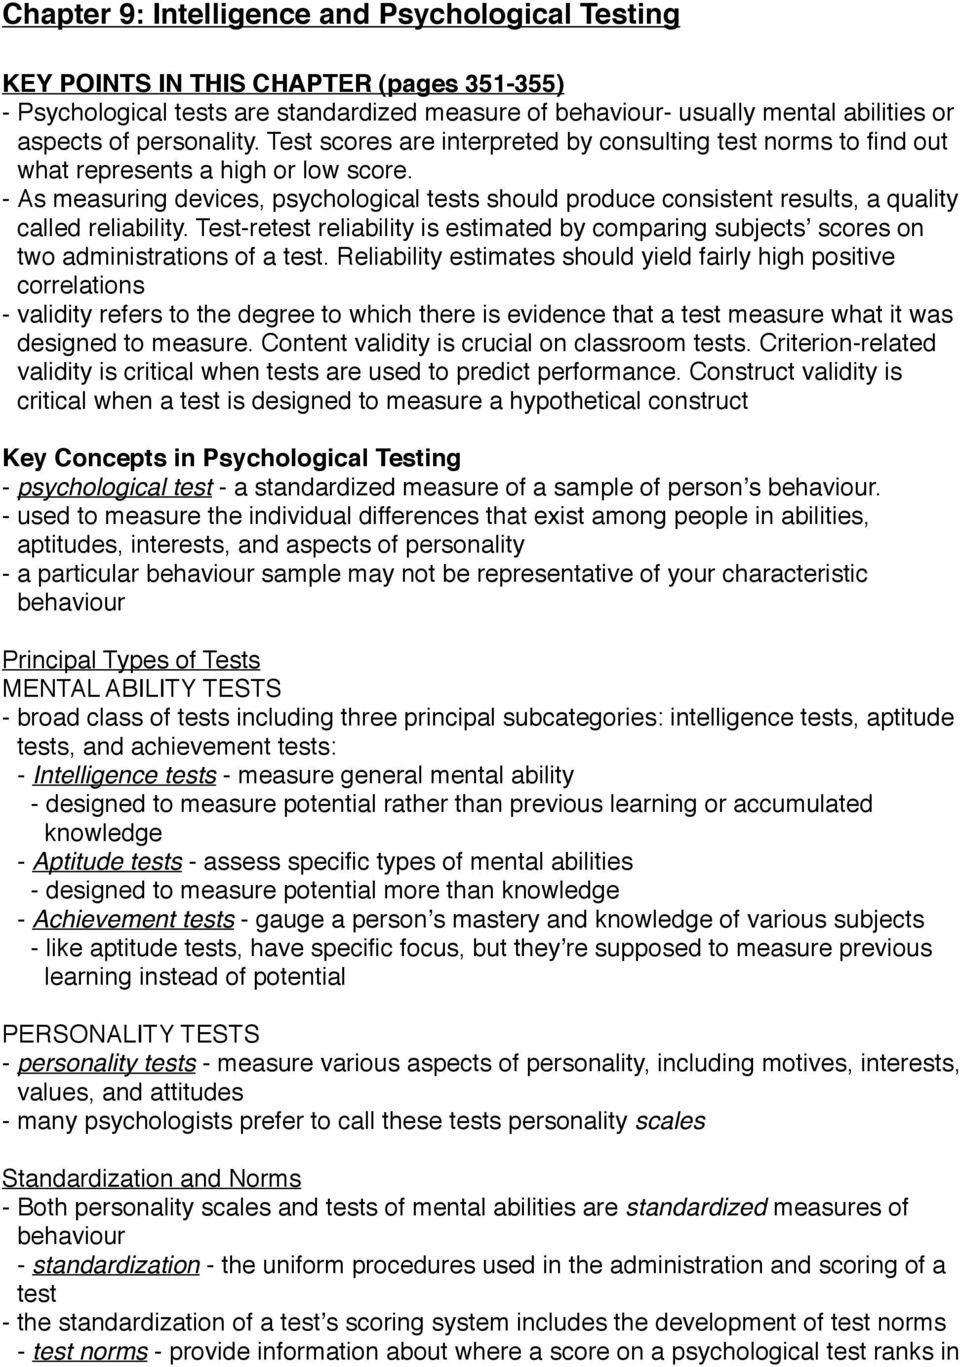 Chapter 9: Intelligence and Psychological Testing - PDF